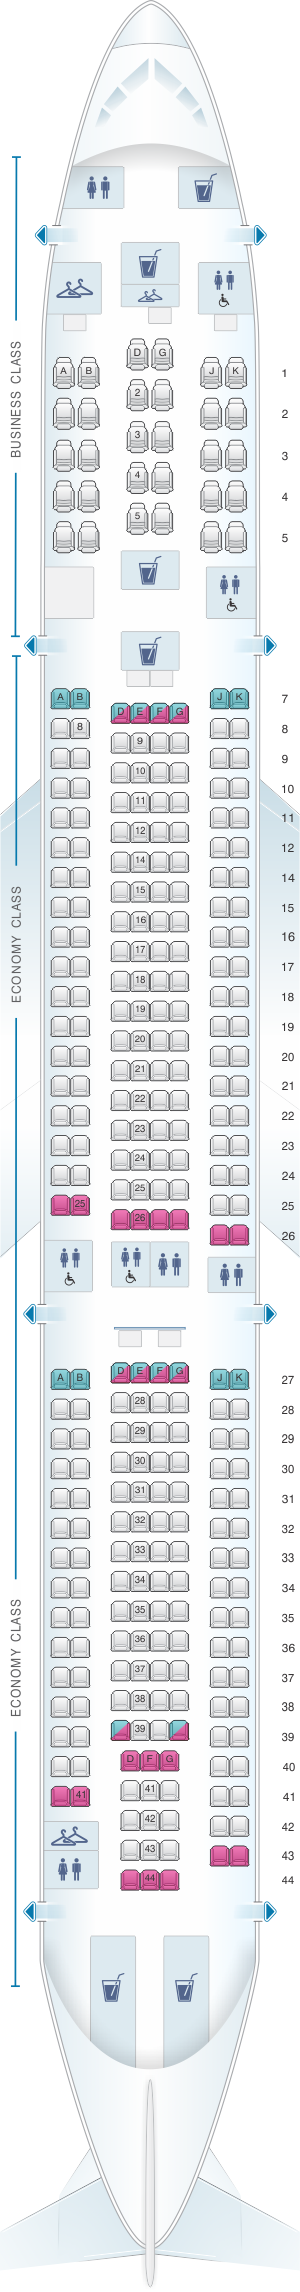 Seat map for China Airlines Airbus A330 300 Config. 1